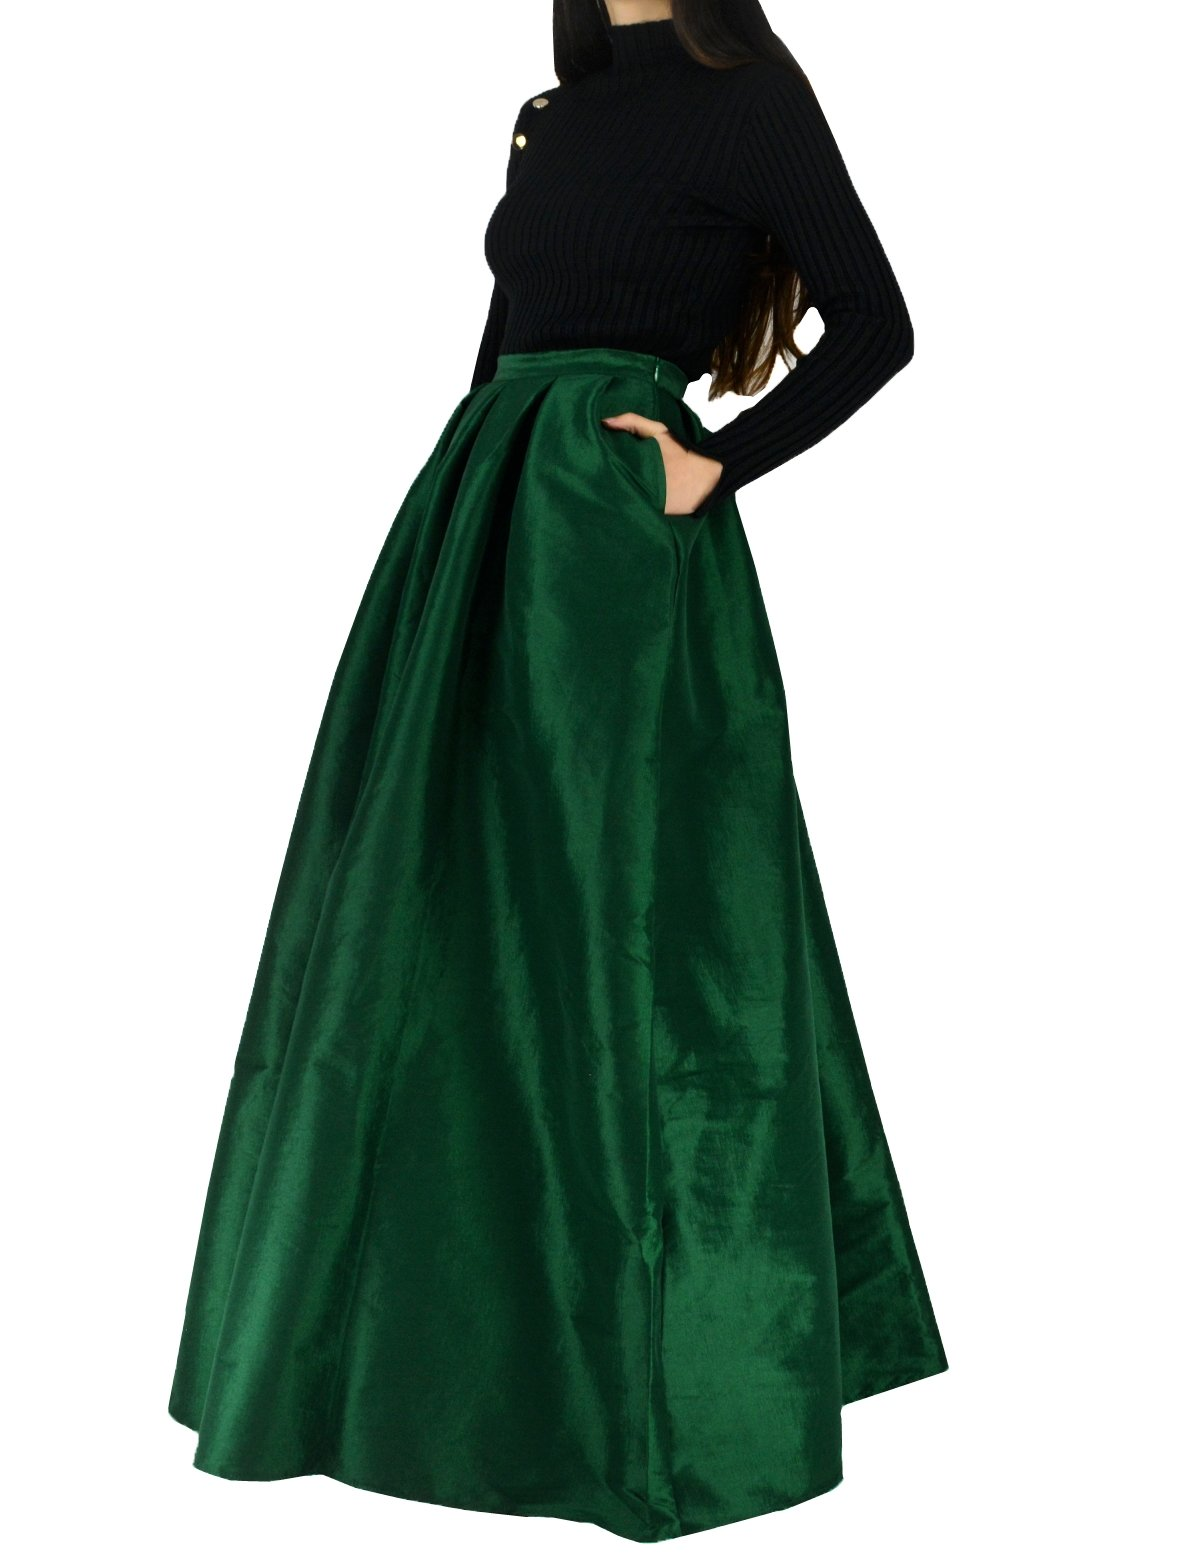 YSJERA Women's High Waist A-Line Pleated Maxi Skirts Party Swing Skirt with Pockets (14, Green)